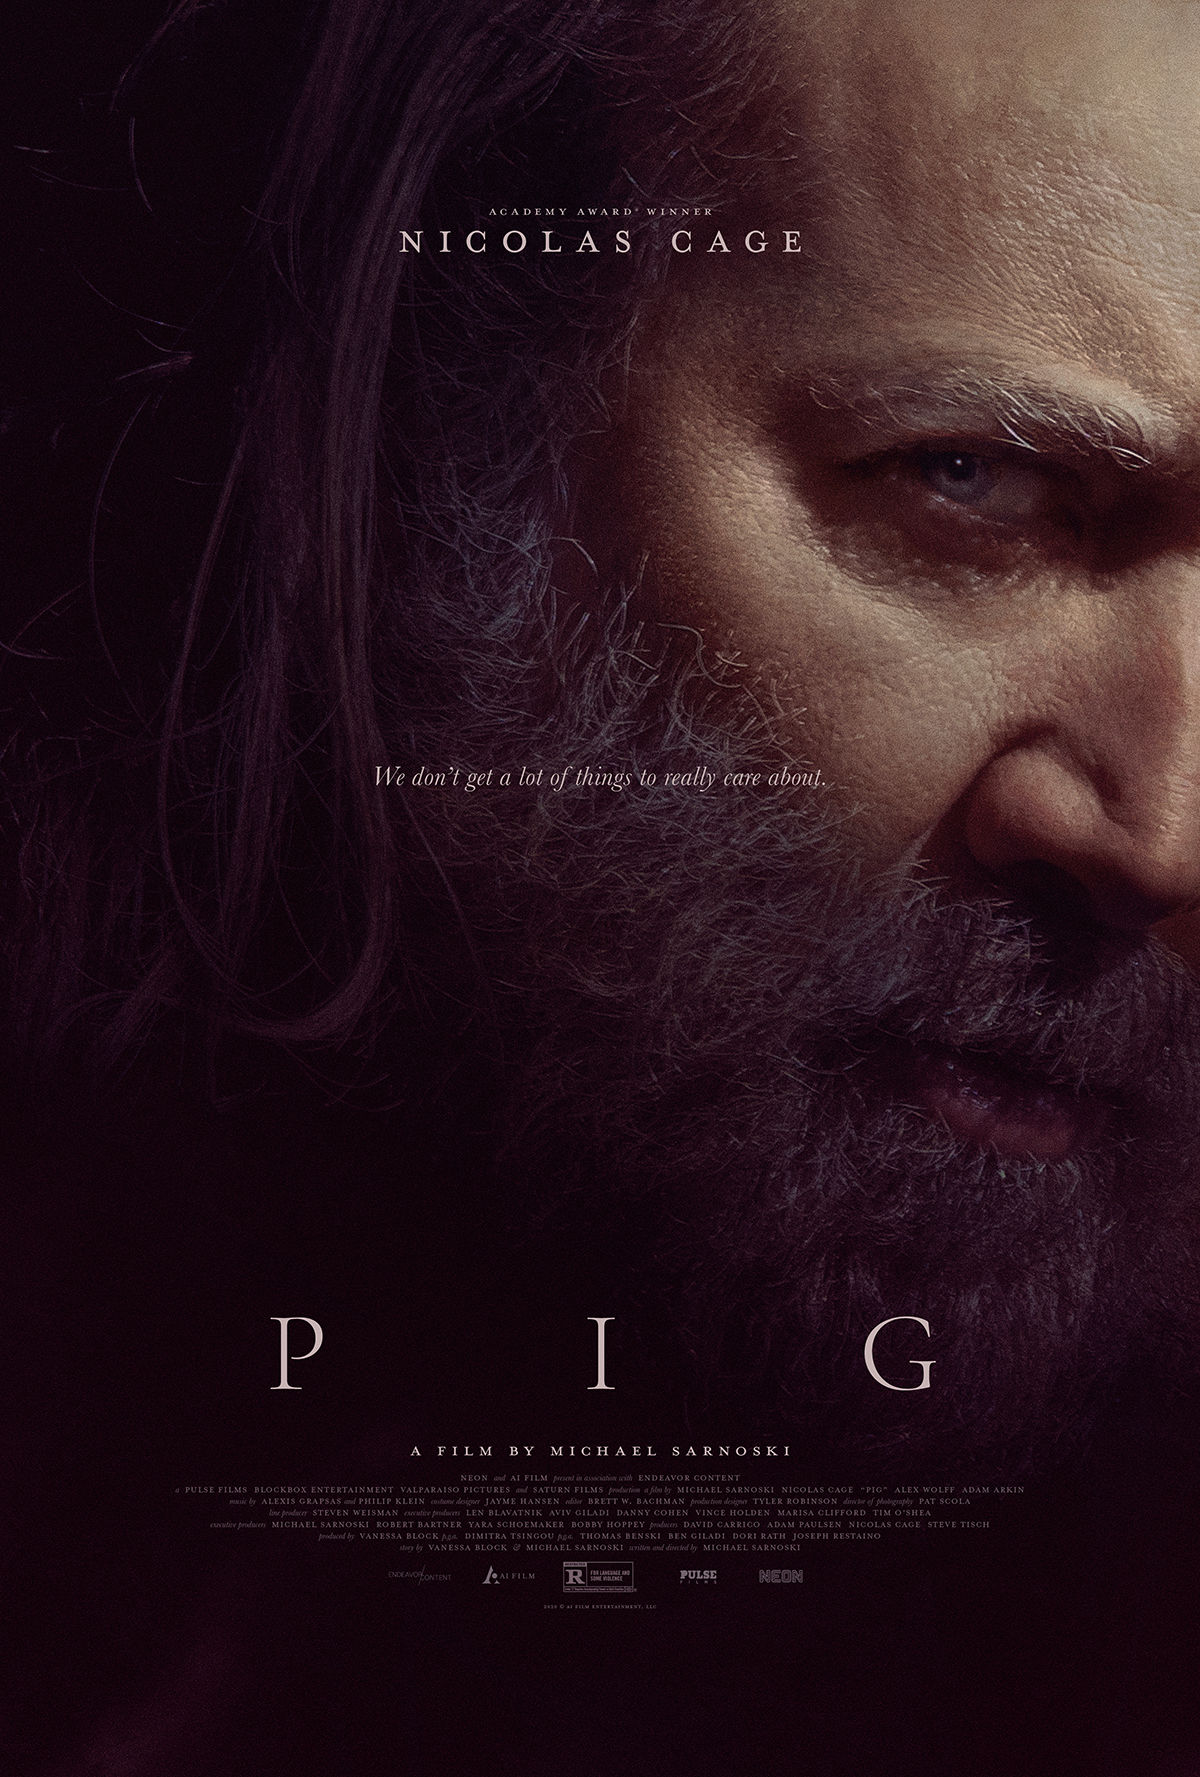 Movie poster image for PIG